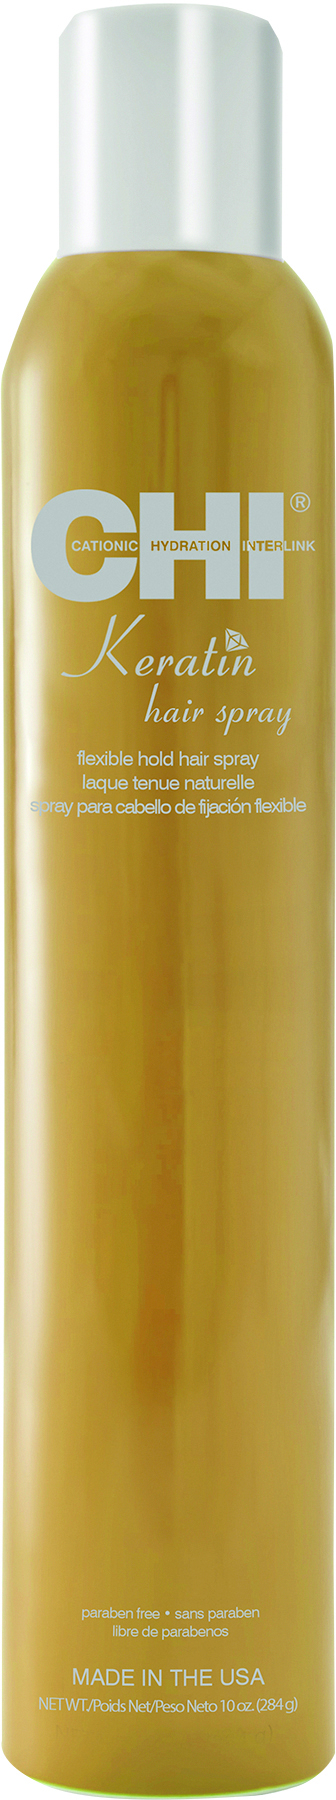 Farouk Systems has savings on shine products like Shine Infusion, Silk Therapy Shine On and Rapid Shine. In addition, finishers like Infra Texture, Silk Therapy Firm & Natural Hold Sprays, CHI Enviro hairsprays, Keratin Flex Spray and more.